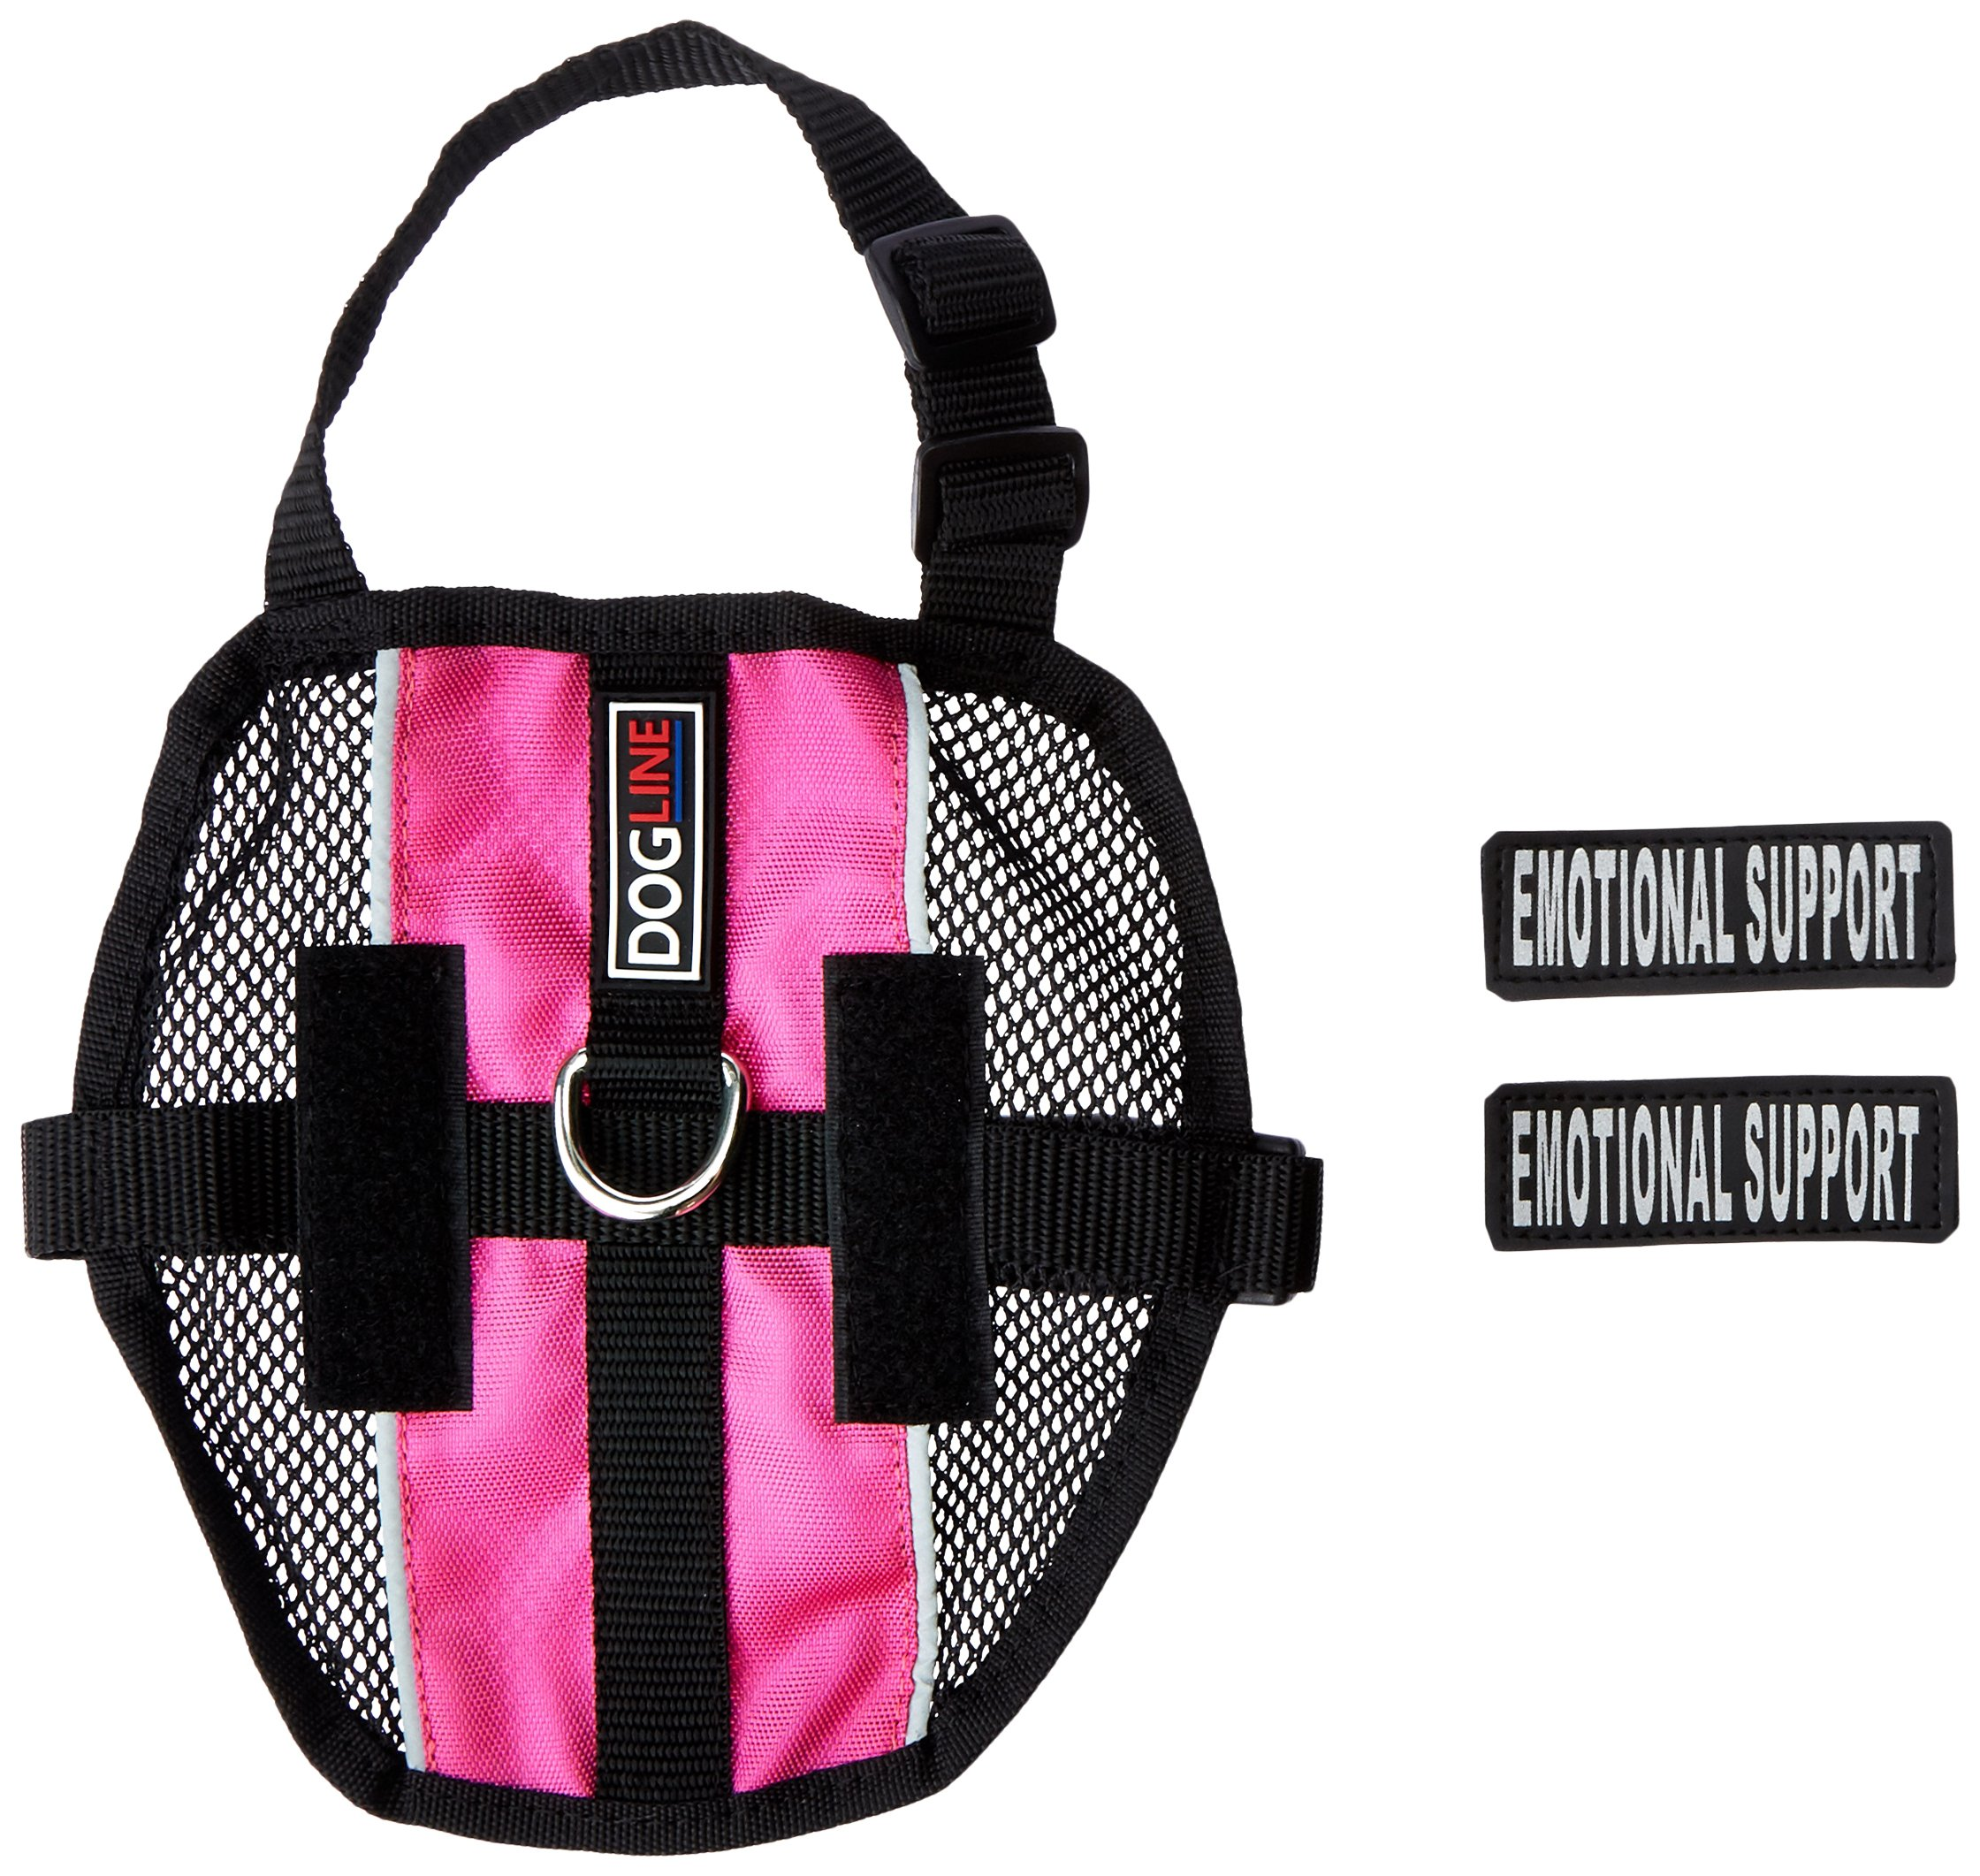 Dogline MaxAire Multi-Purpose Mesh Vest for Dogs and 2 Removable Emotional Support Patches, Small, Pink by Dogline (Image #1)